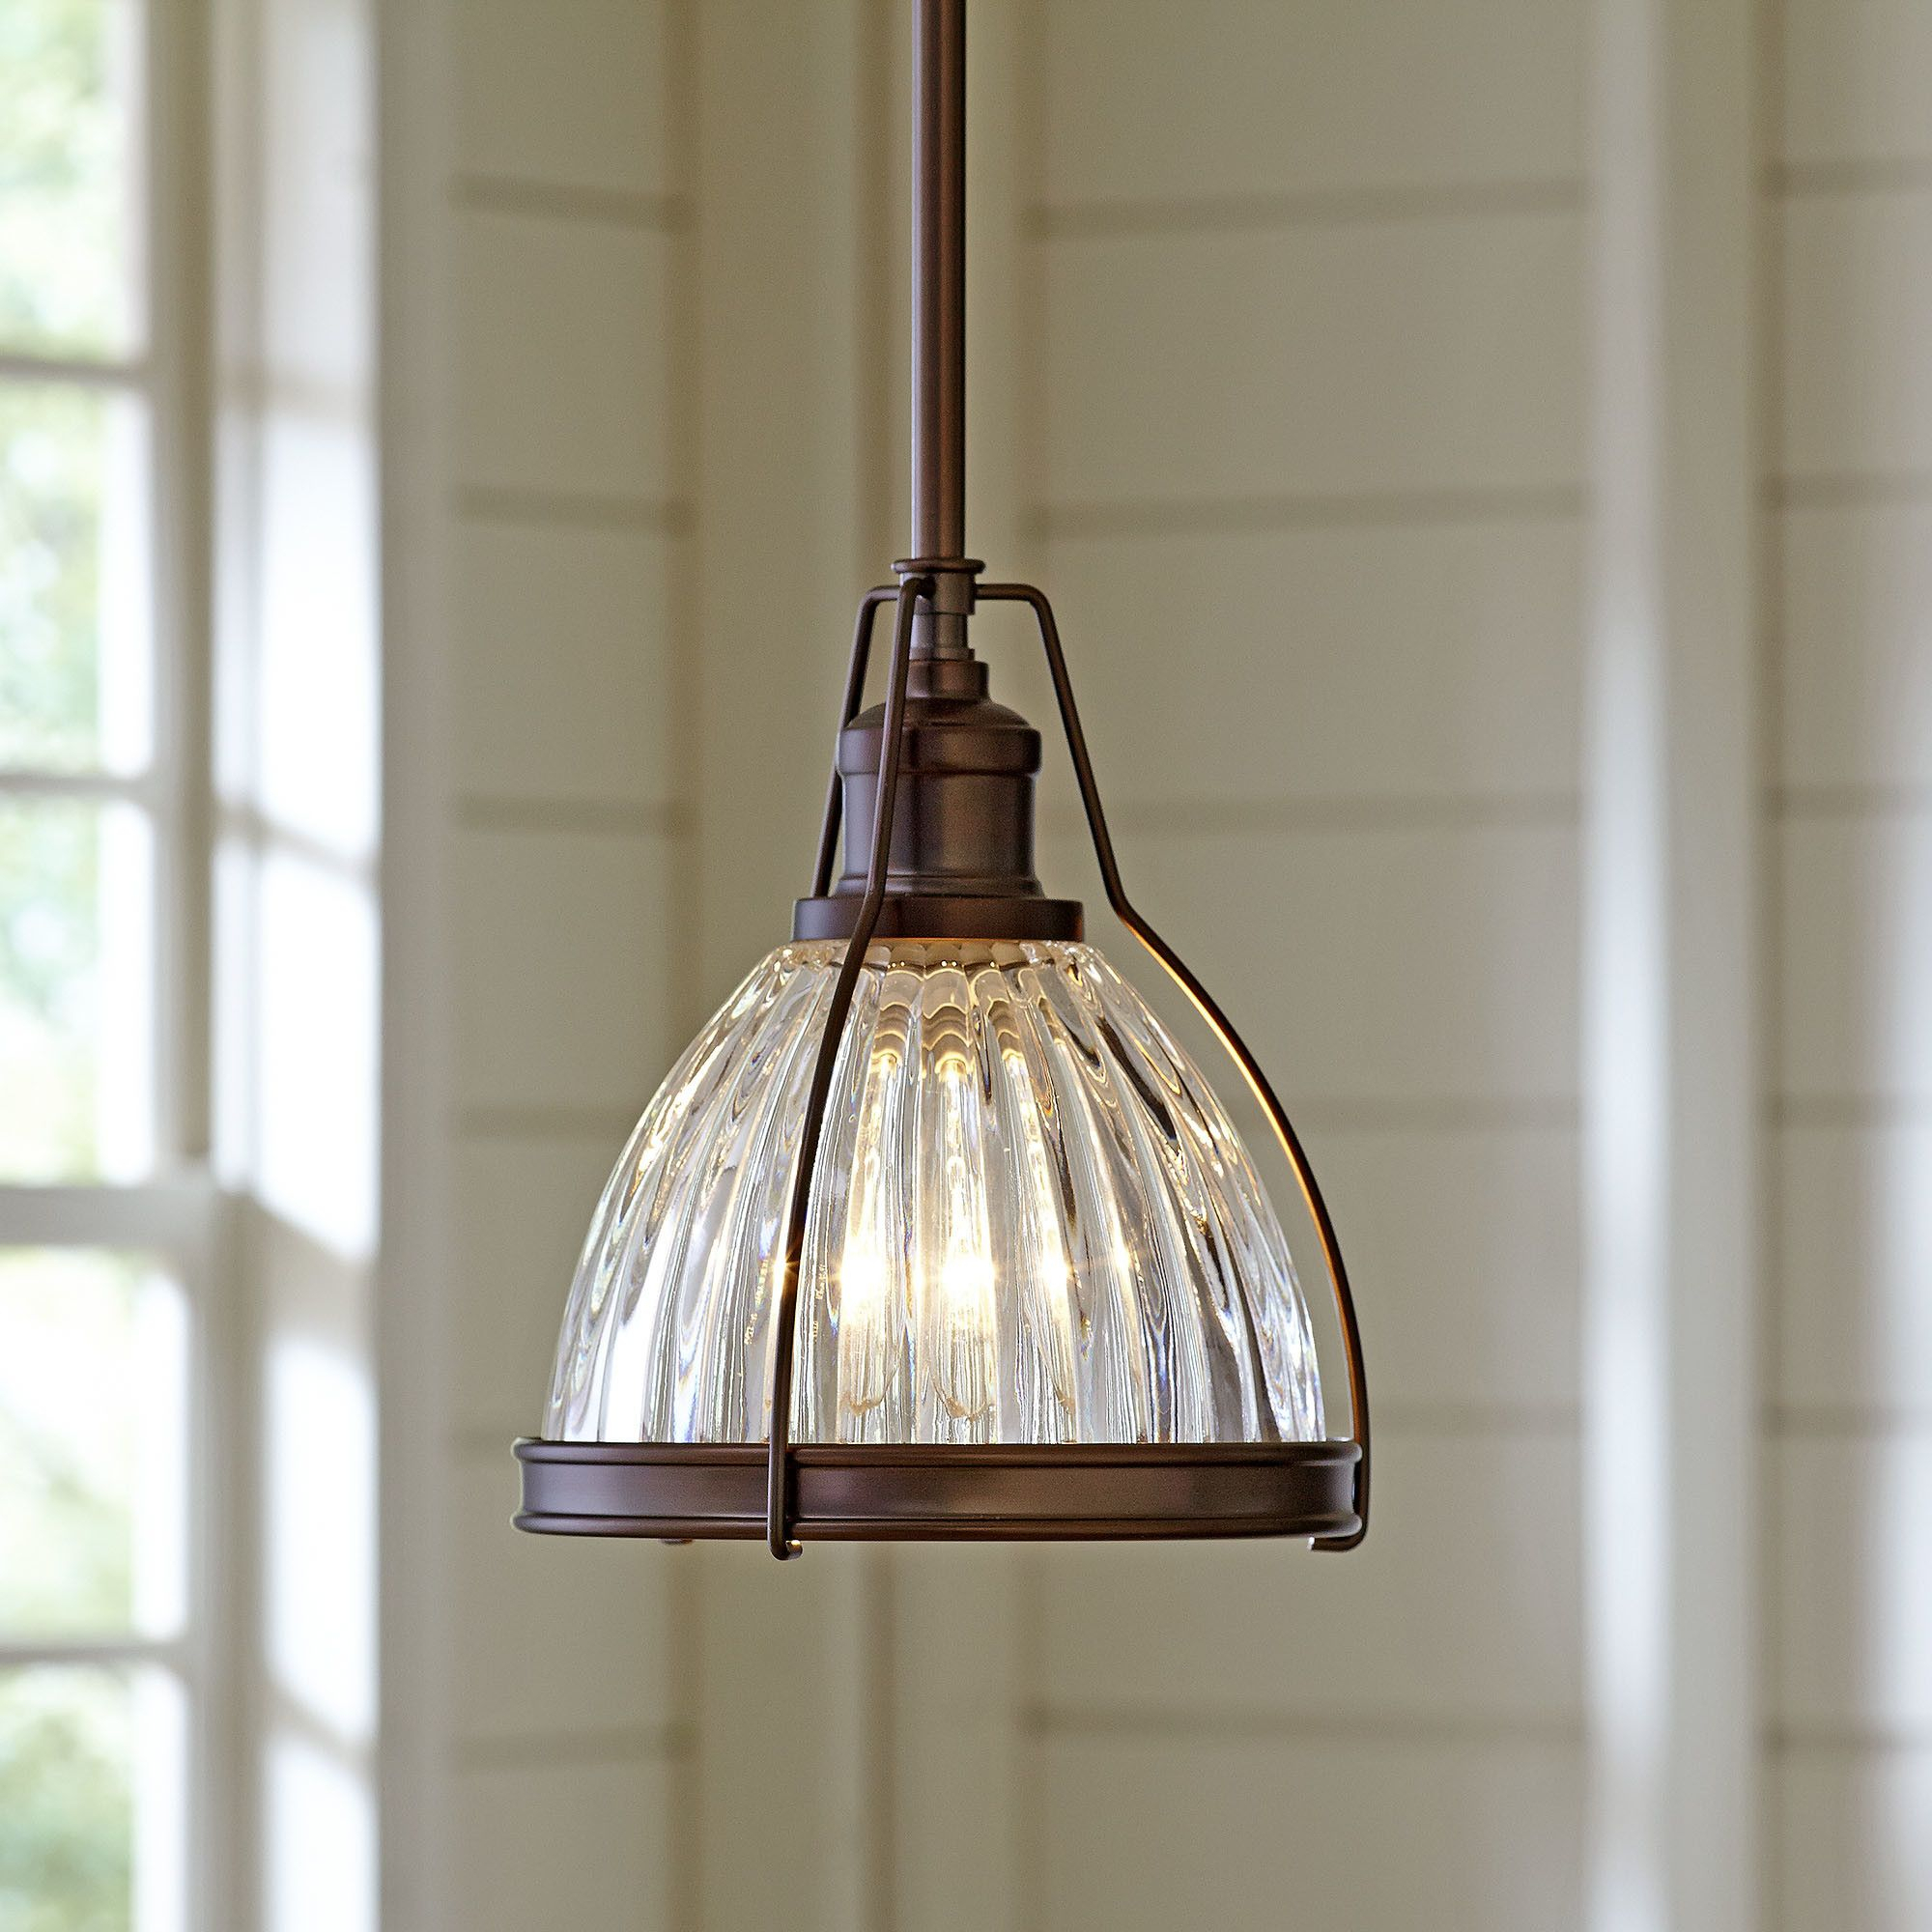 Giuseppina 1 Light Single Bell Pendant In 2019 | Kitchen Within Sargent 1 Light Single Bell Pendants (View 11 of 30)